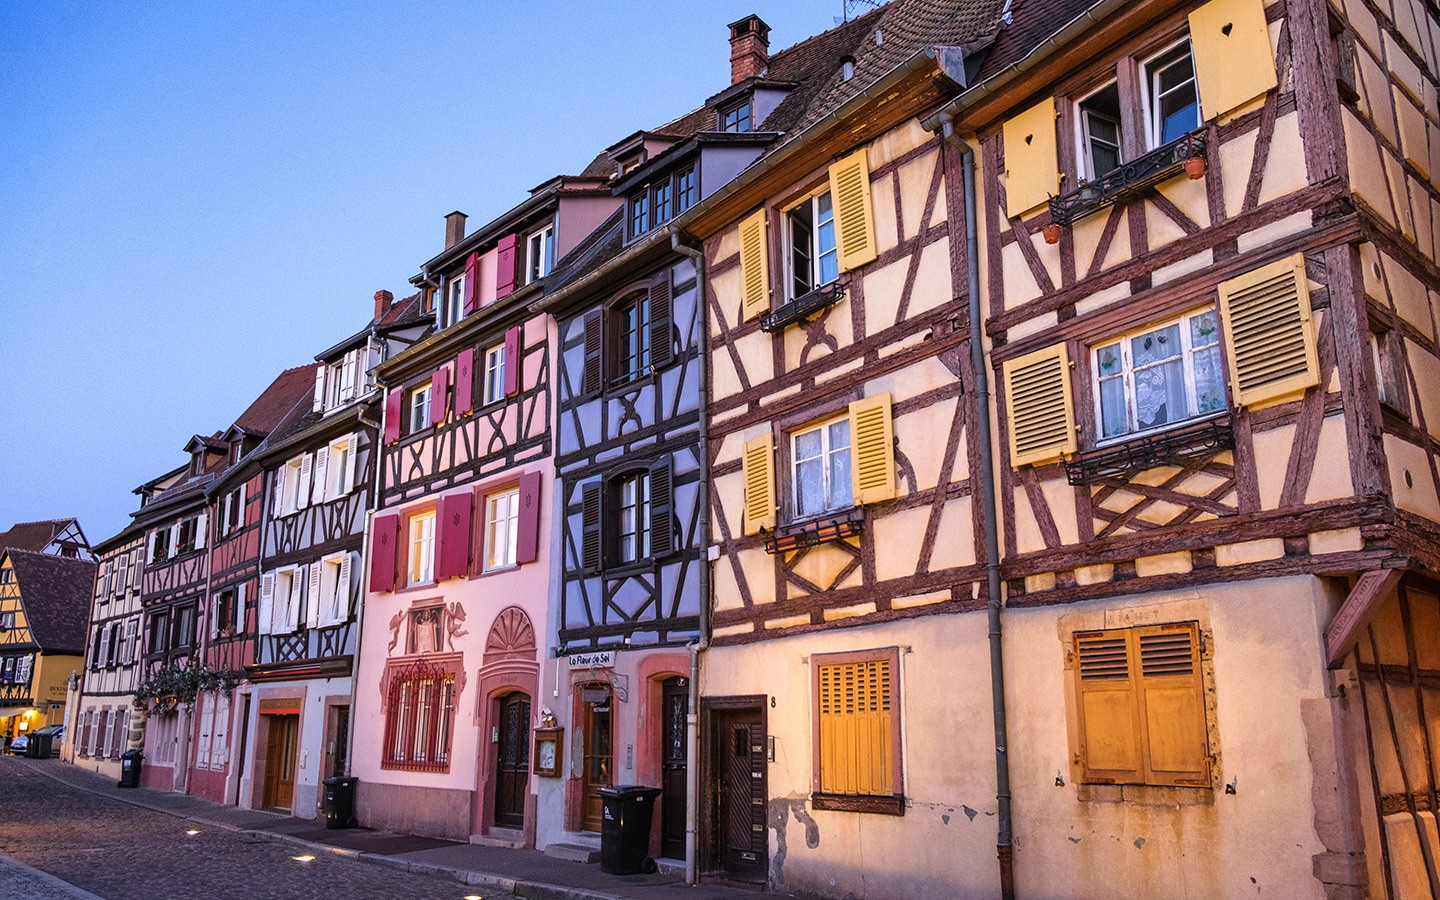 Old houses in Petit Venice, Colmar, at dusk